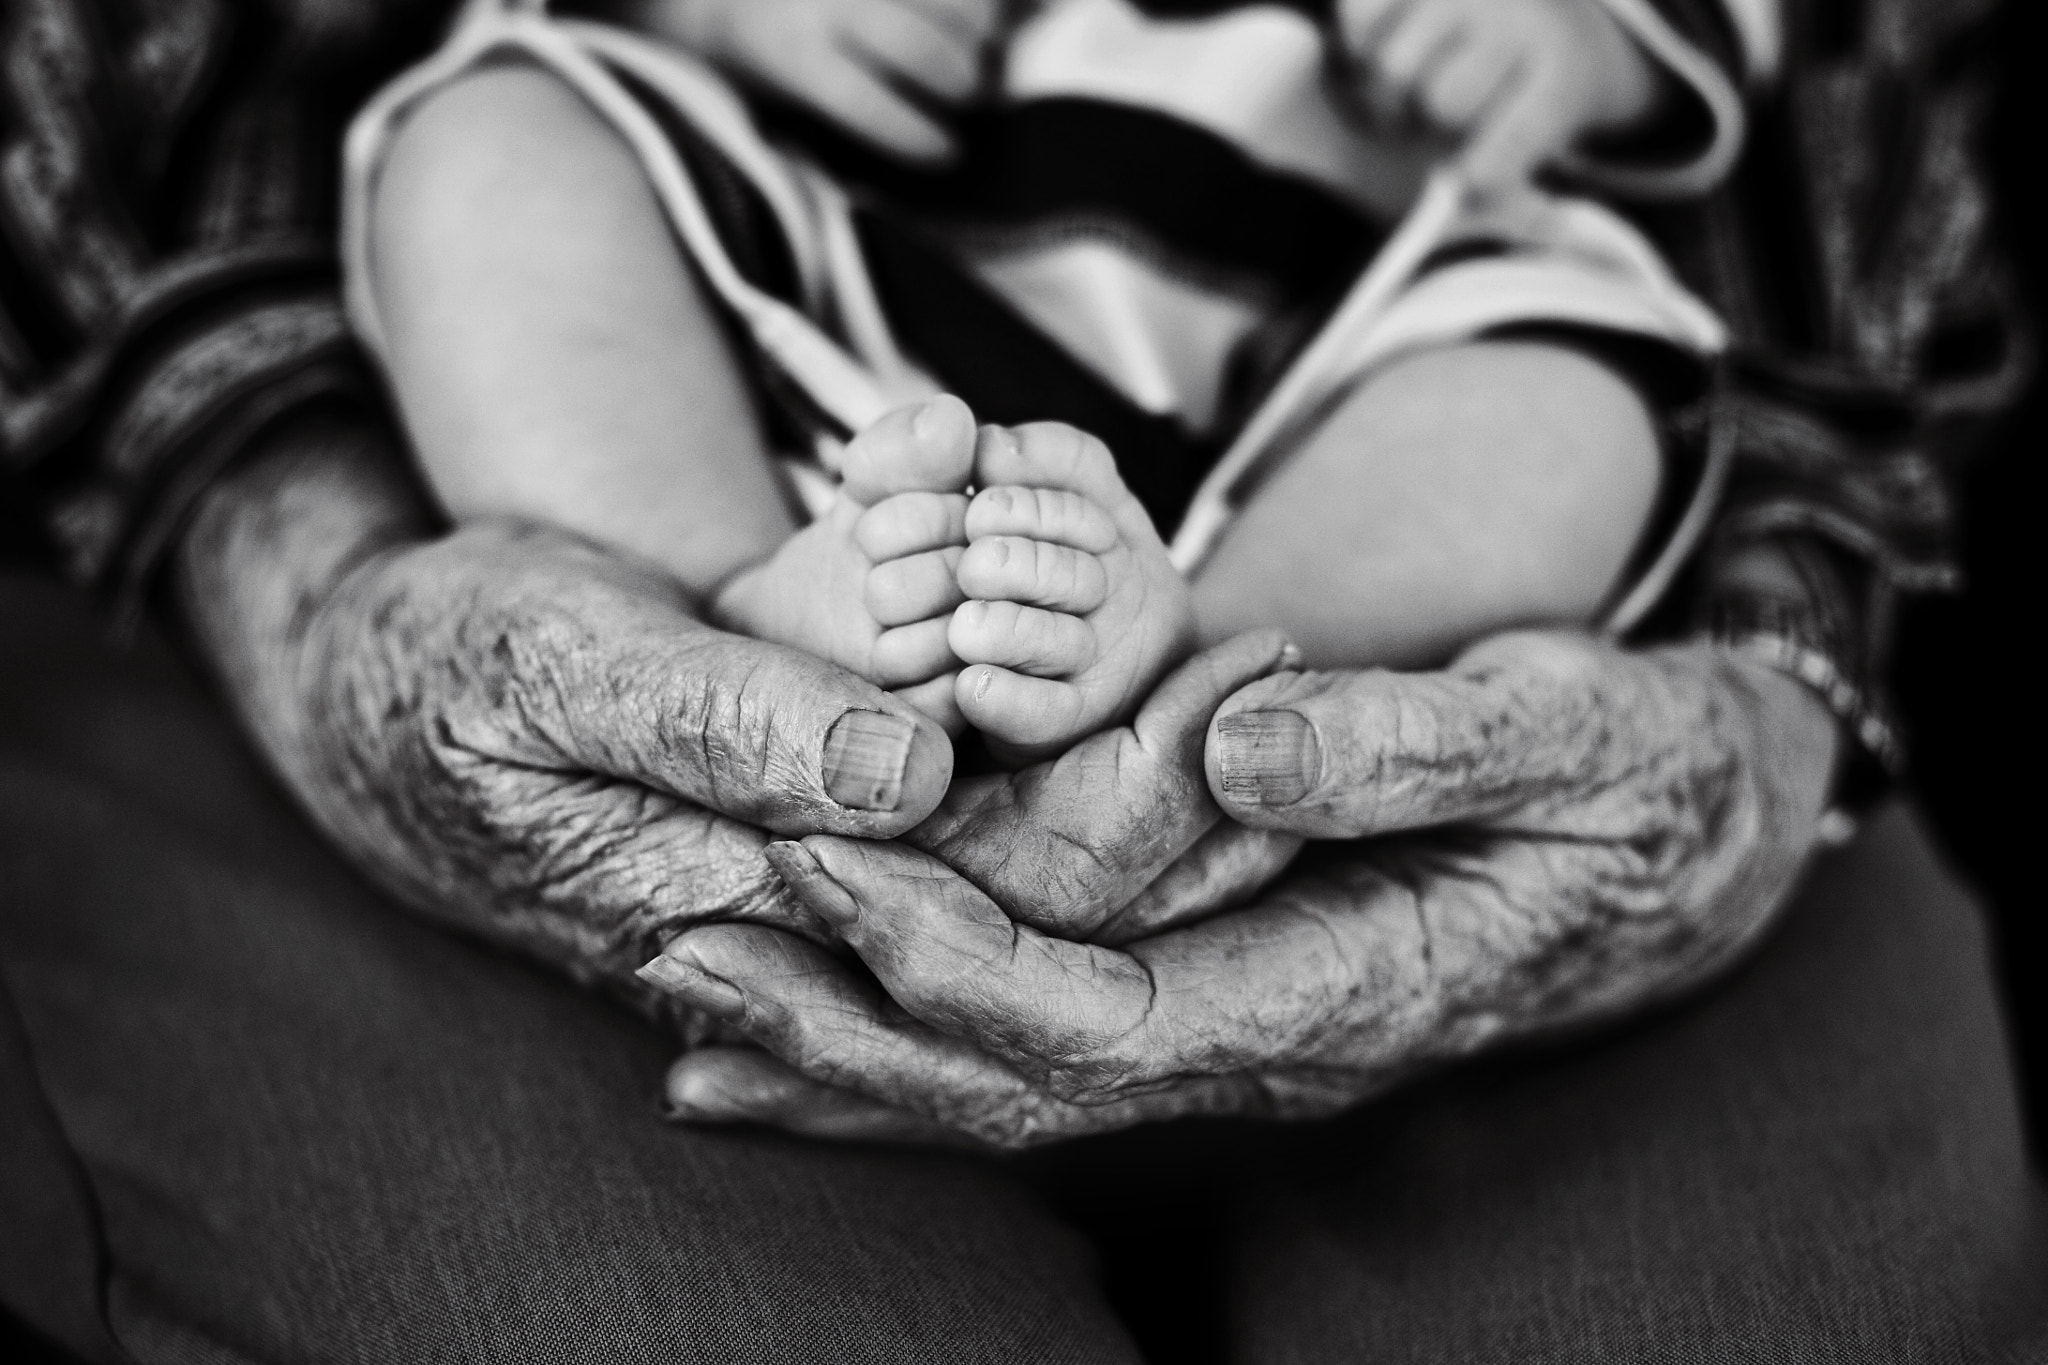 Photograph Great grandma's hands by Stephanie Beaty | Lifeography on 500px